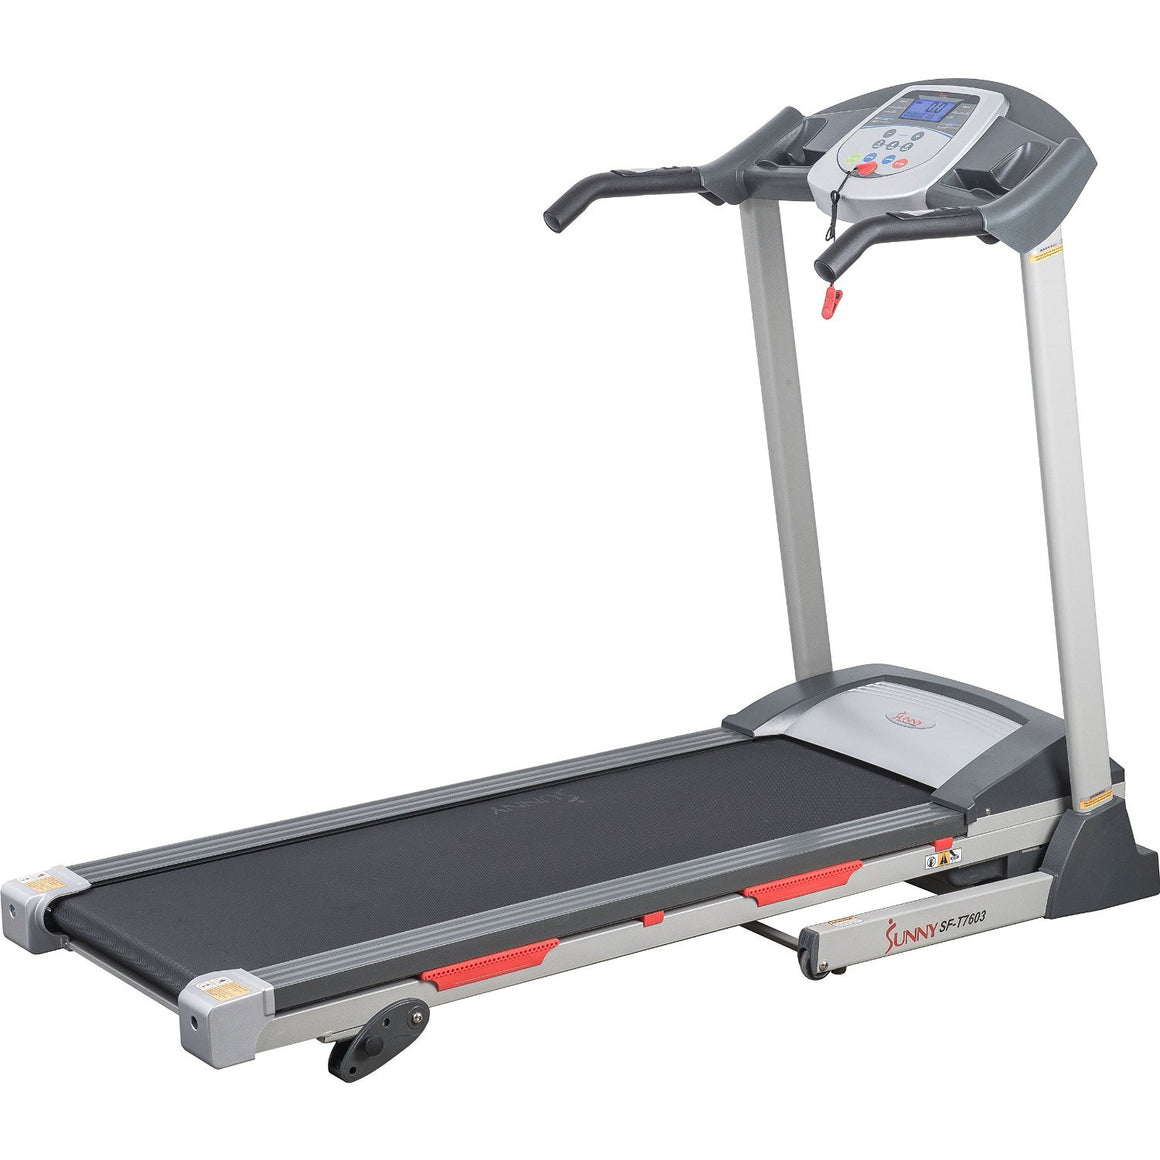 Sunny Health & Fitness SF-T7603 Motorized Treadmill - Indoor Cyclery